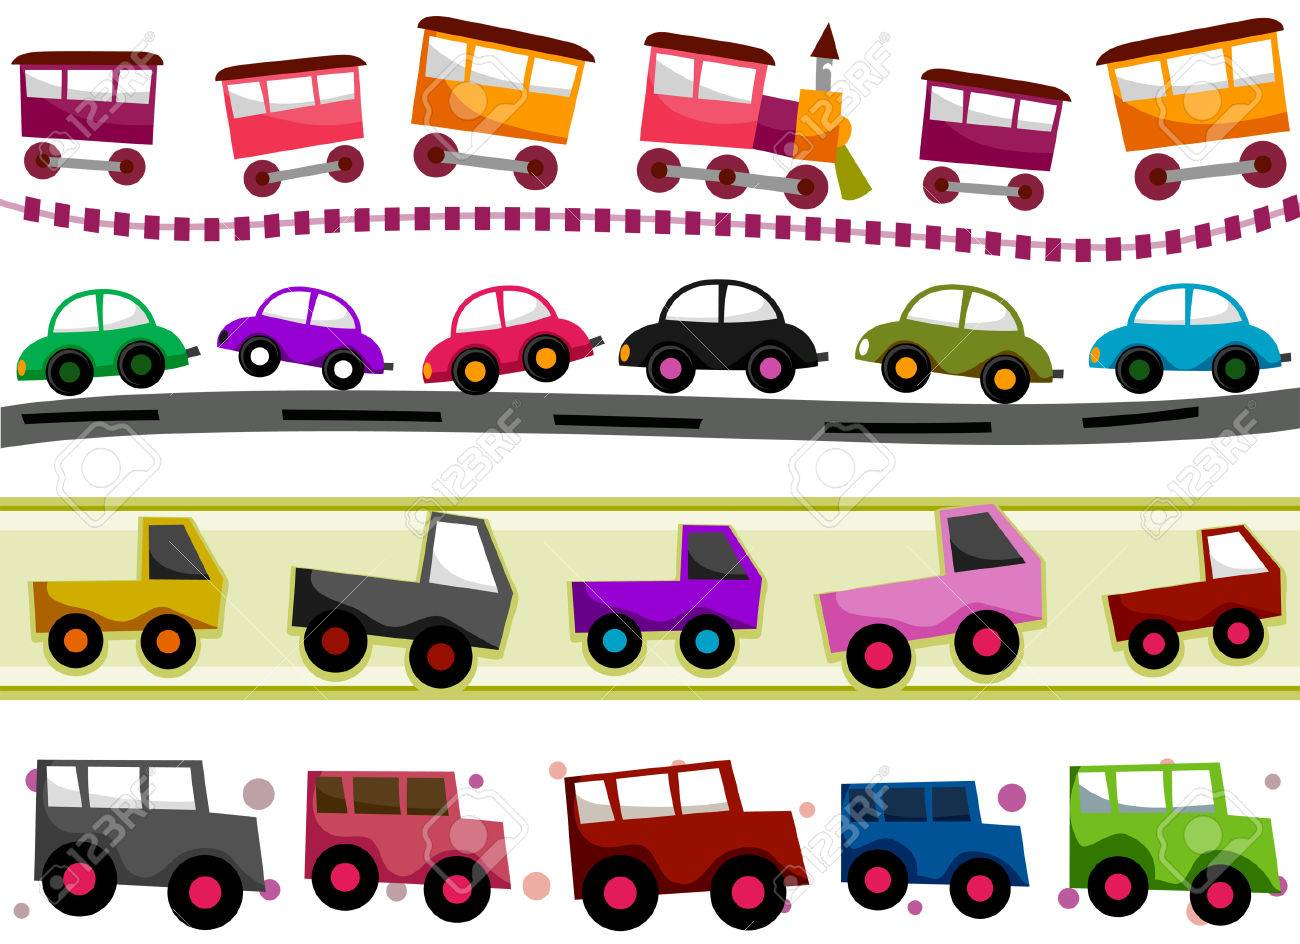 Transportation Border Set with Clipping Path Stock Vector - 5873314